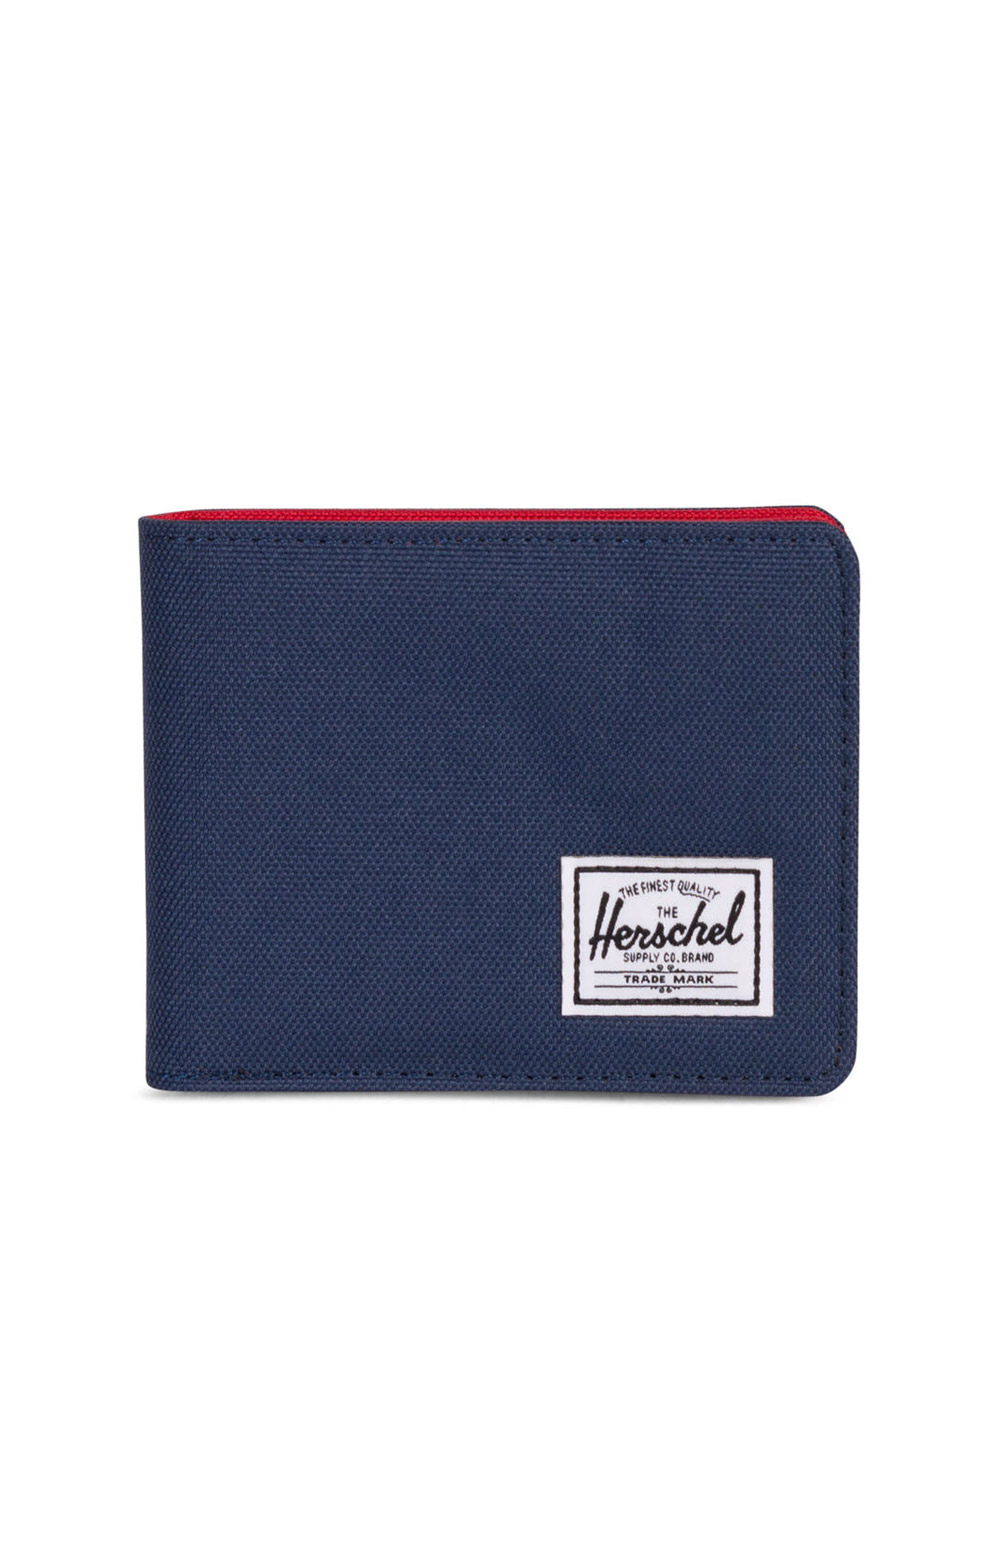 Roy Plus Wallet - Navy/Red (10403-00018)